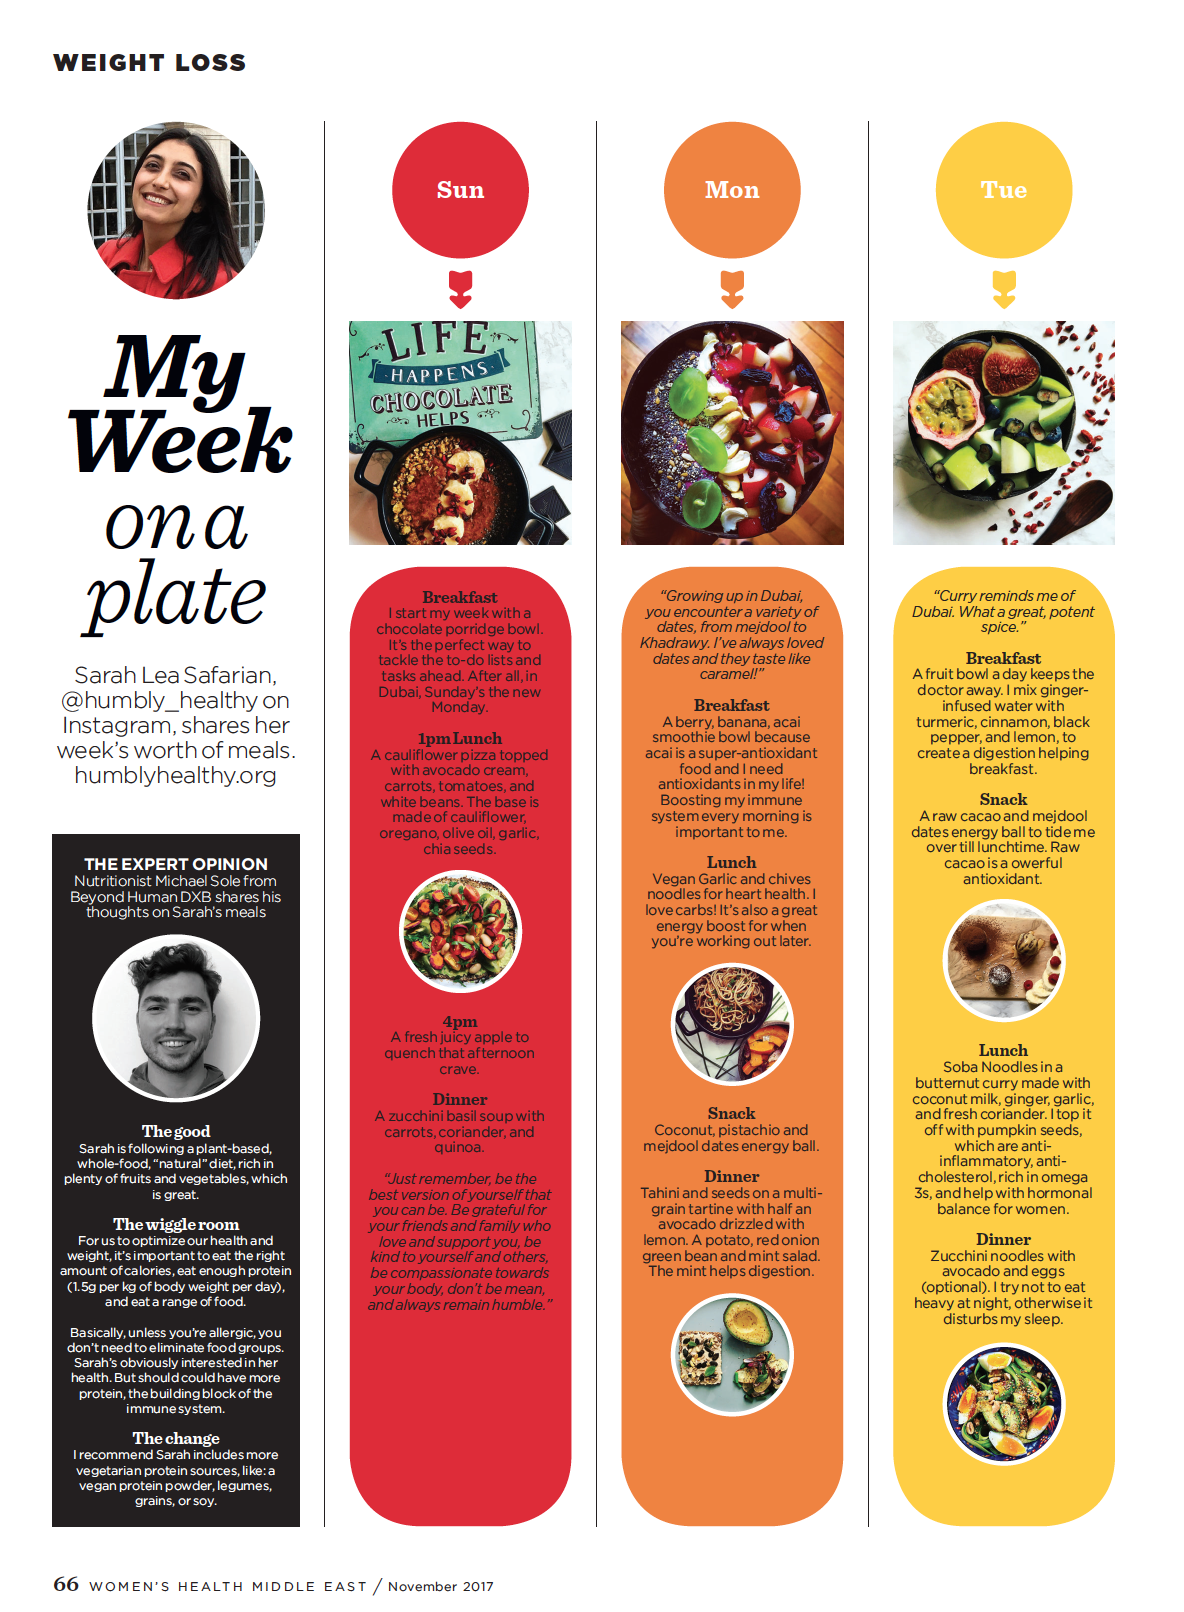 Women's Health Magazine Middle East - My week on a plate